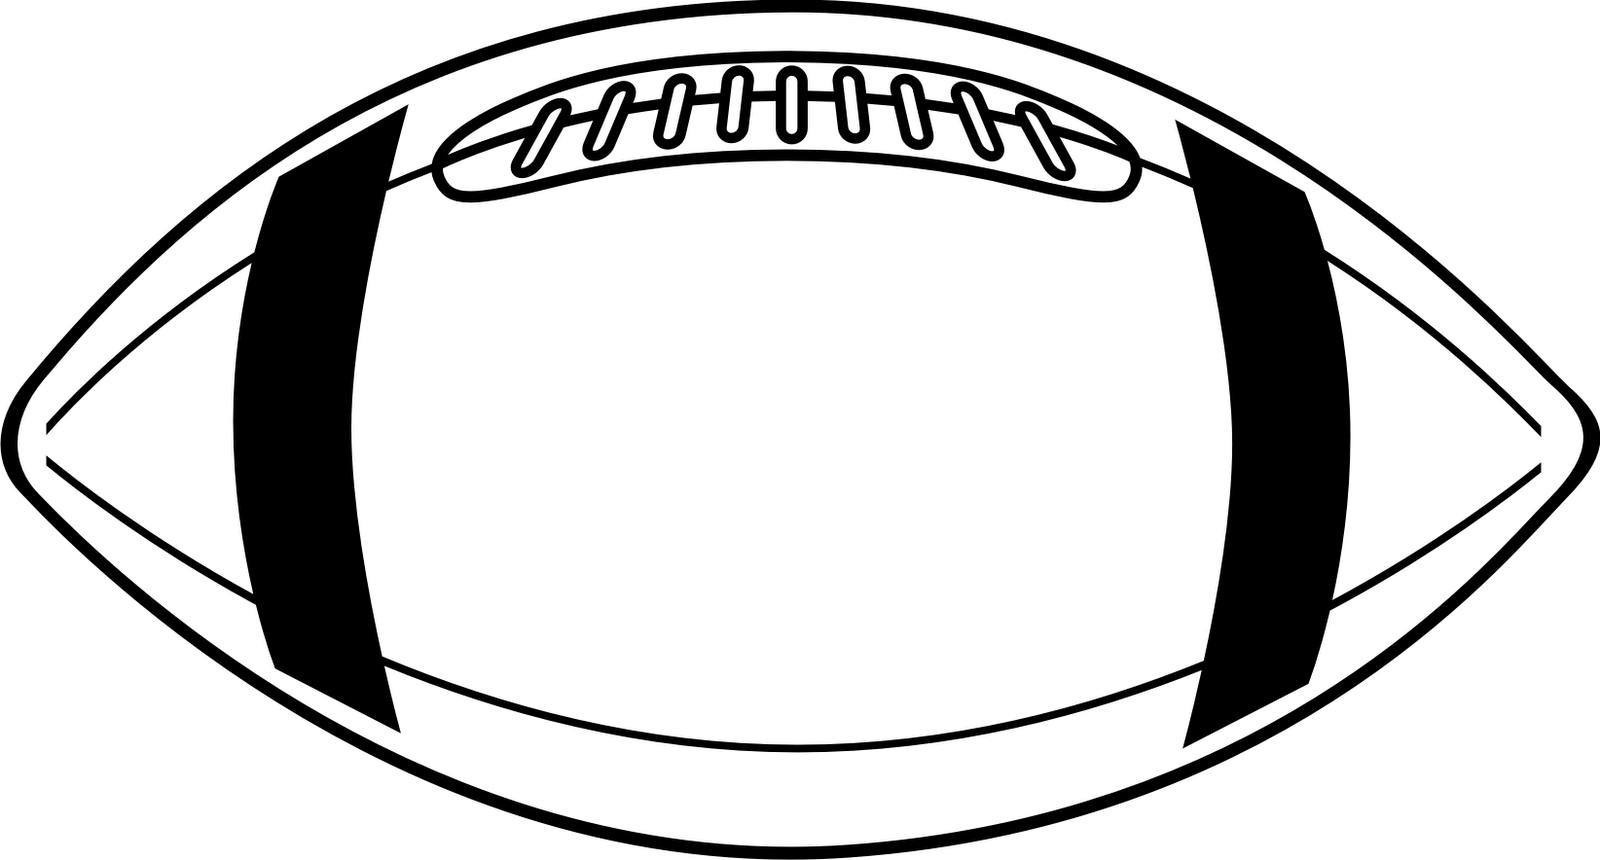 Jersey clipart football fan. Free line art download